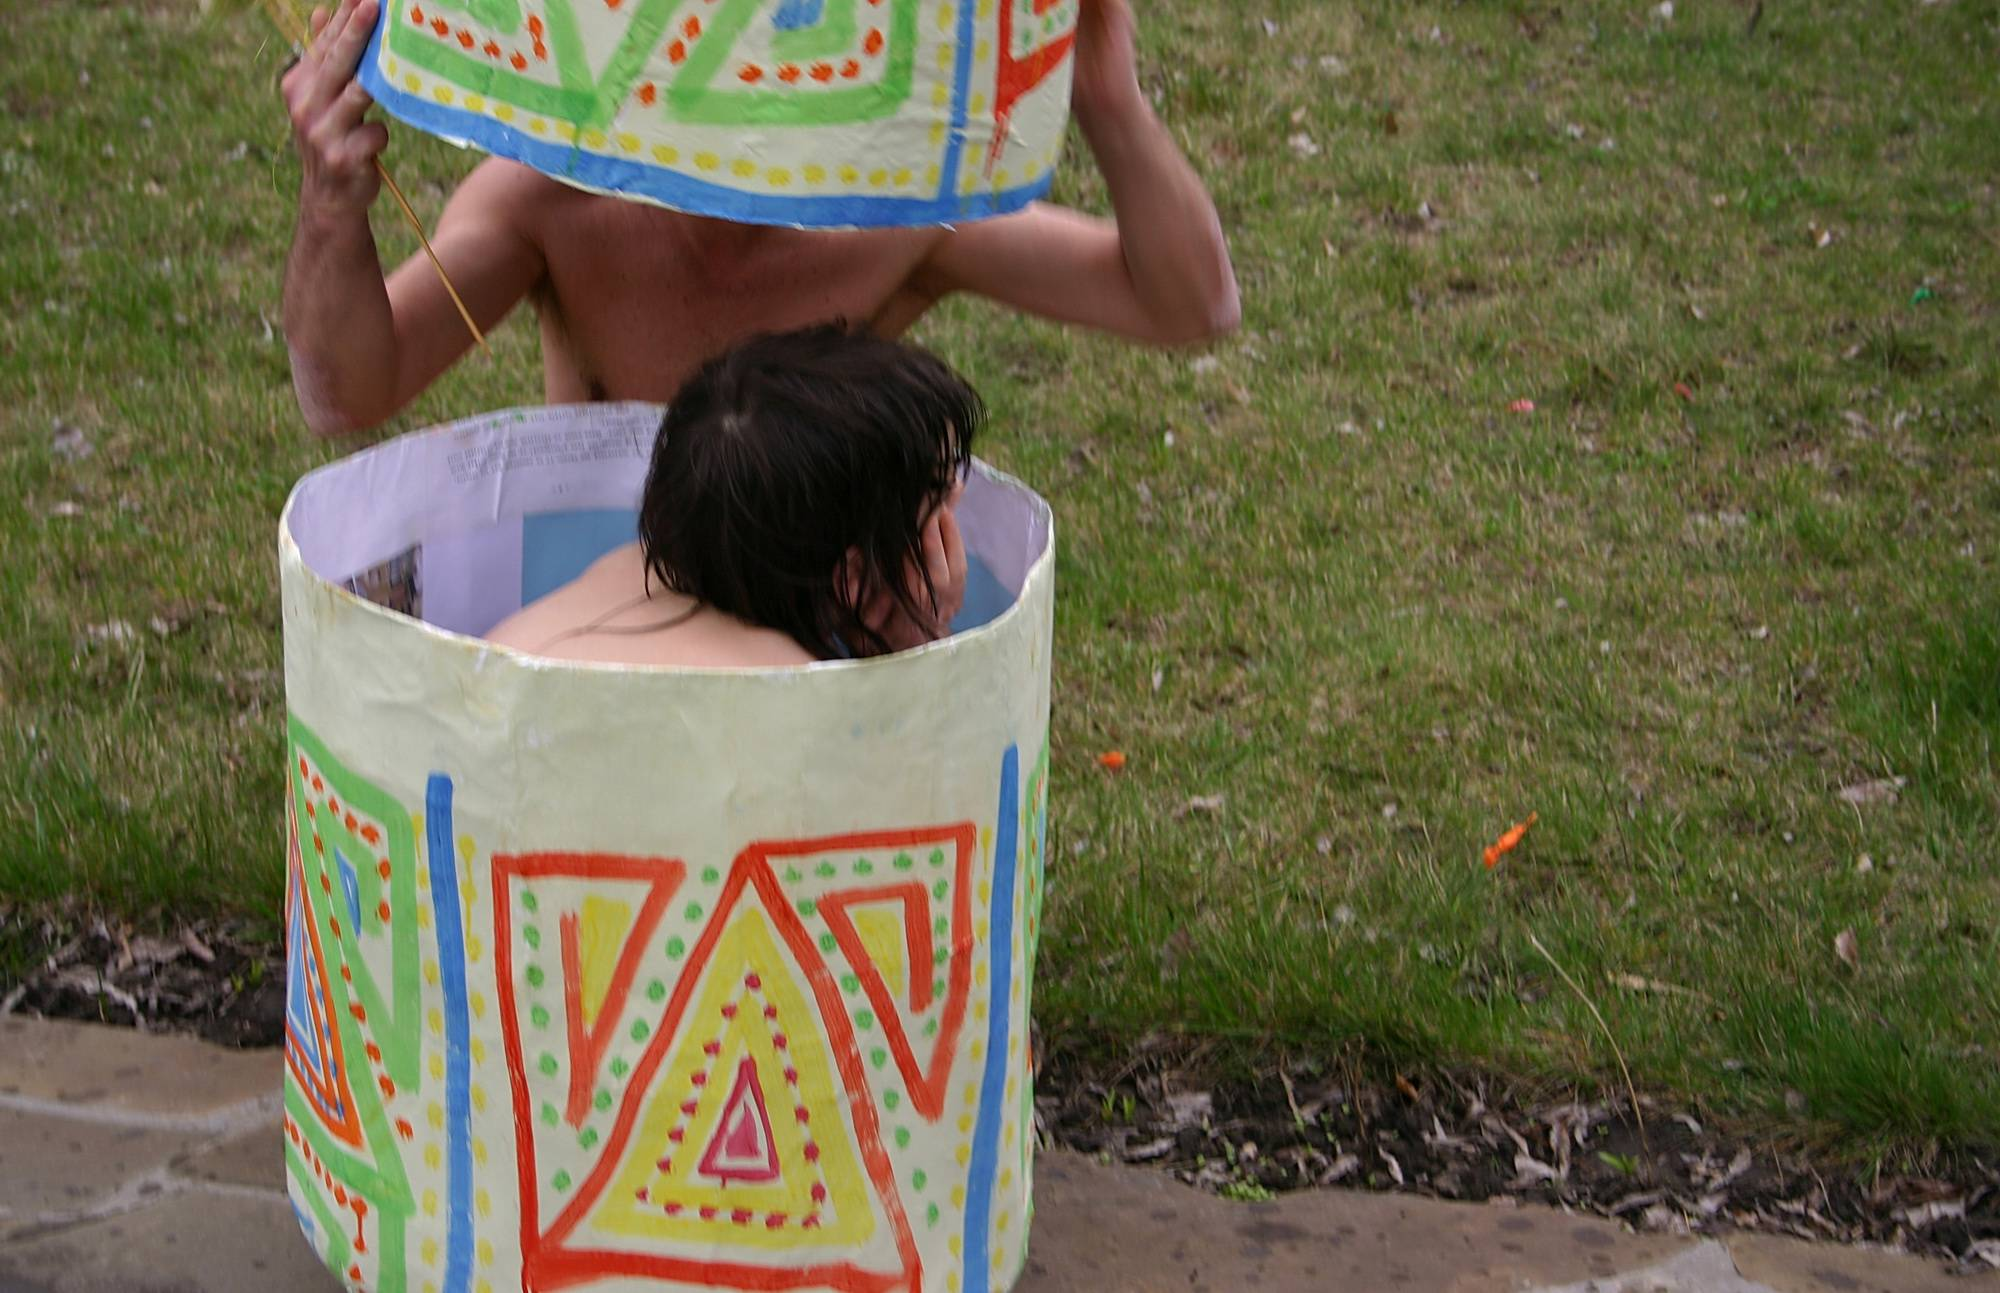 Pure Nudism Photos Carwash Double Egg Walk - 1